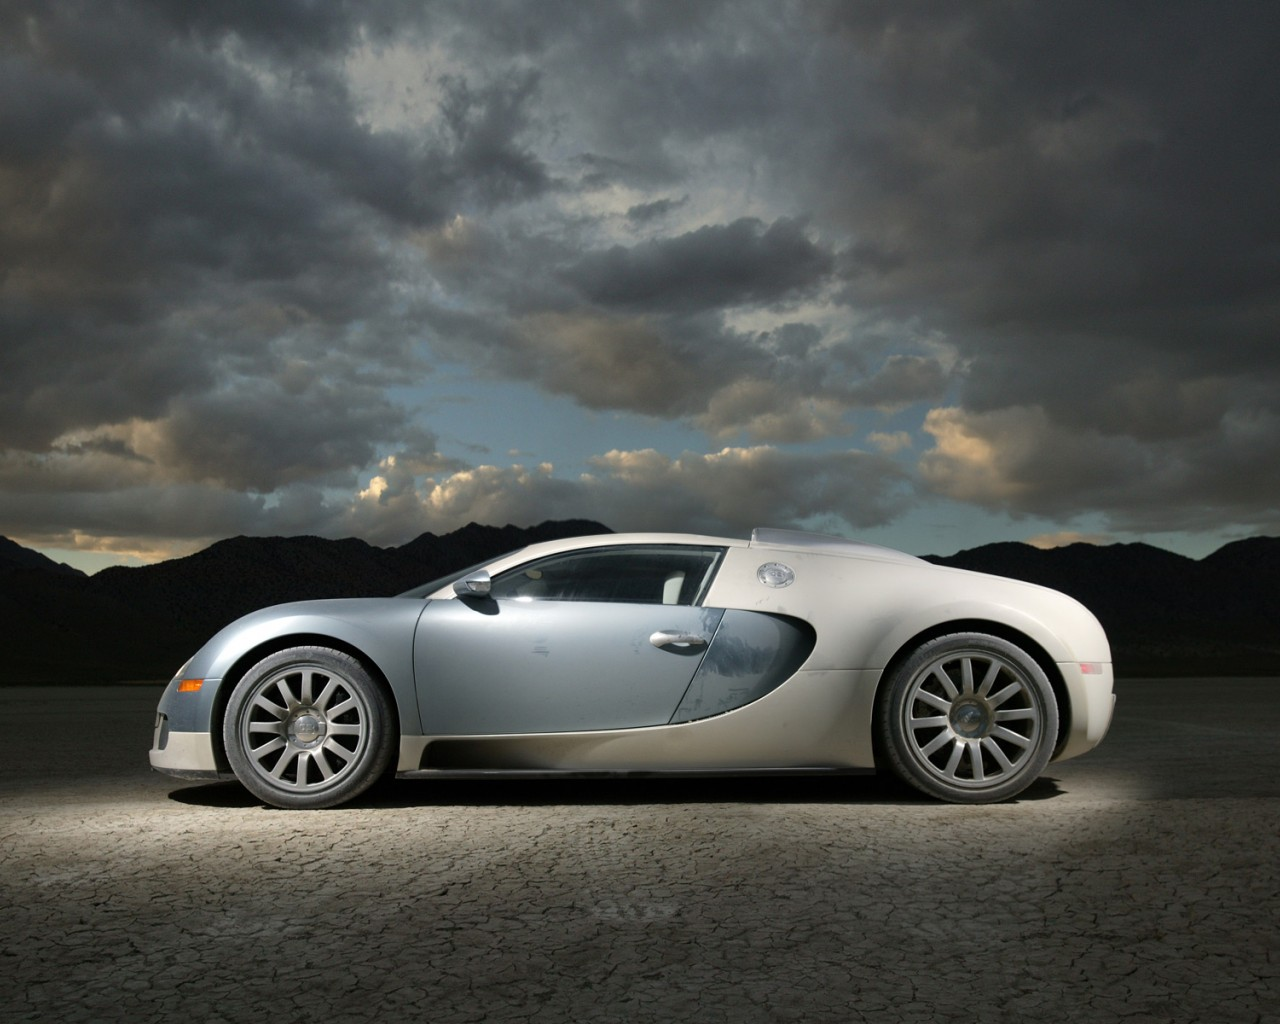 bugatti veyron wallpaper 1280x1024 wallpapersafari. Black Bedroom Furniture Sets. Home Design Ideas